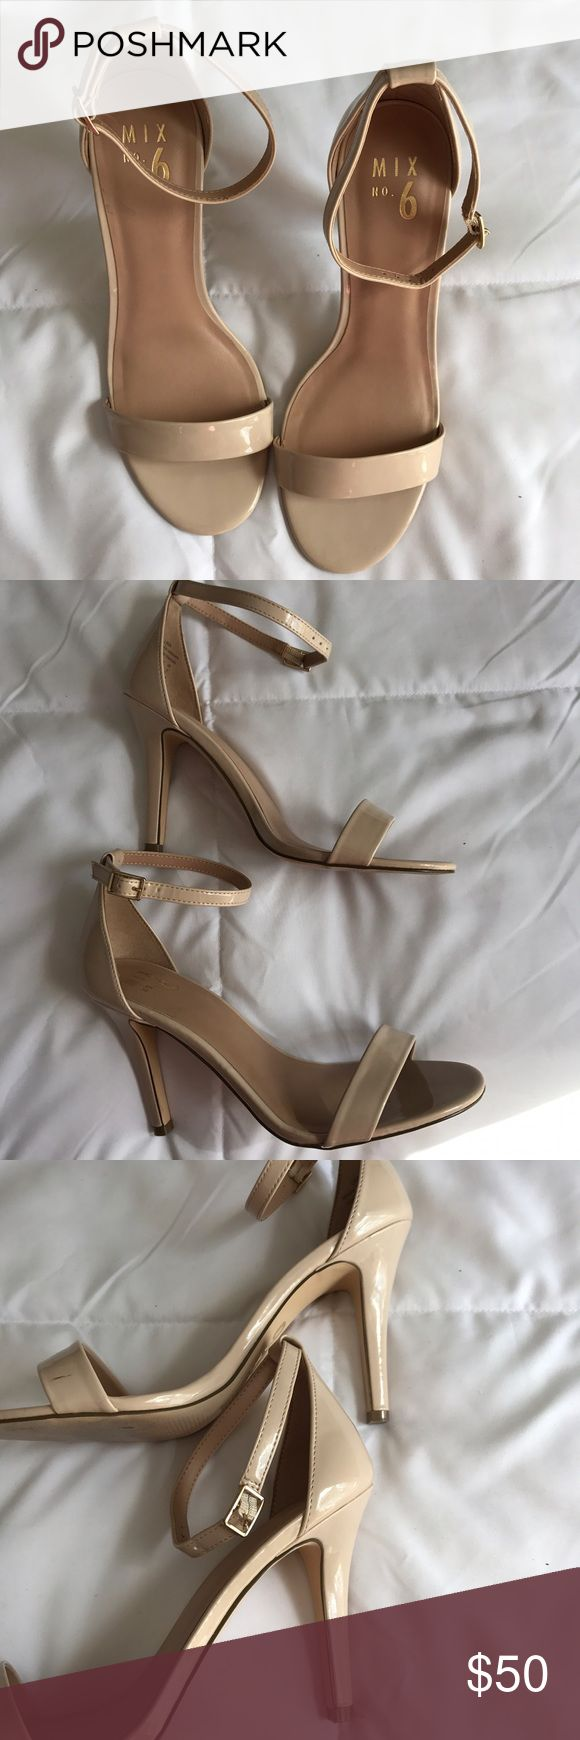 """Nude Patent Leather Heel worn once to an event, bought from Designer Shoe Warehouse ❤️ 4"""" heel Steve Madden Shoes Heels"""